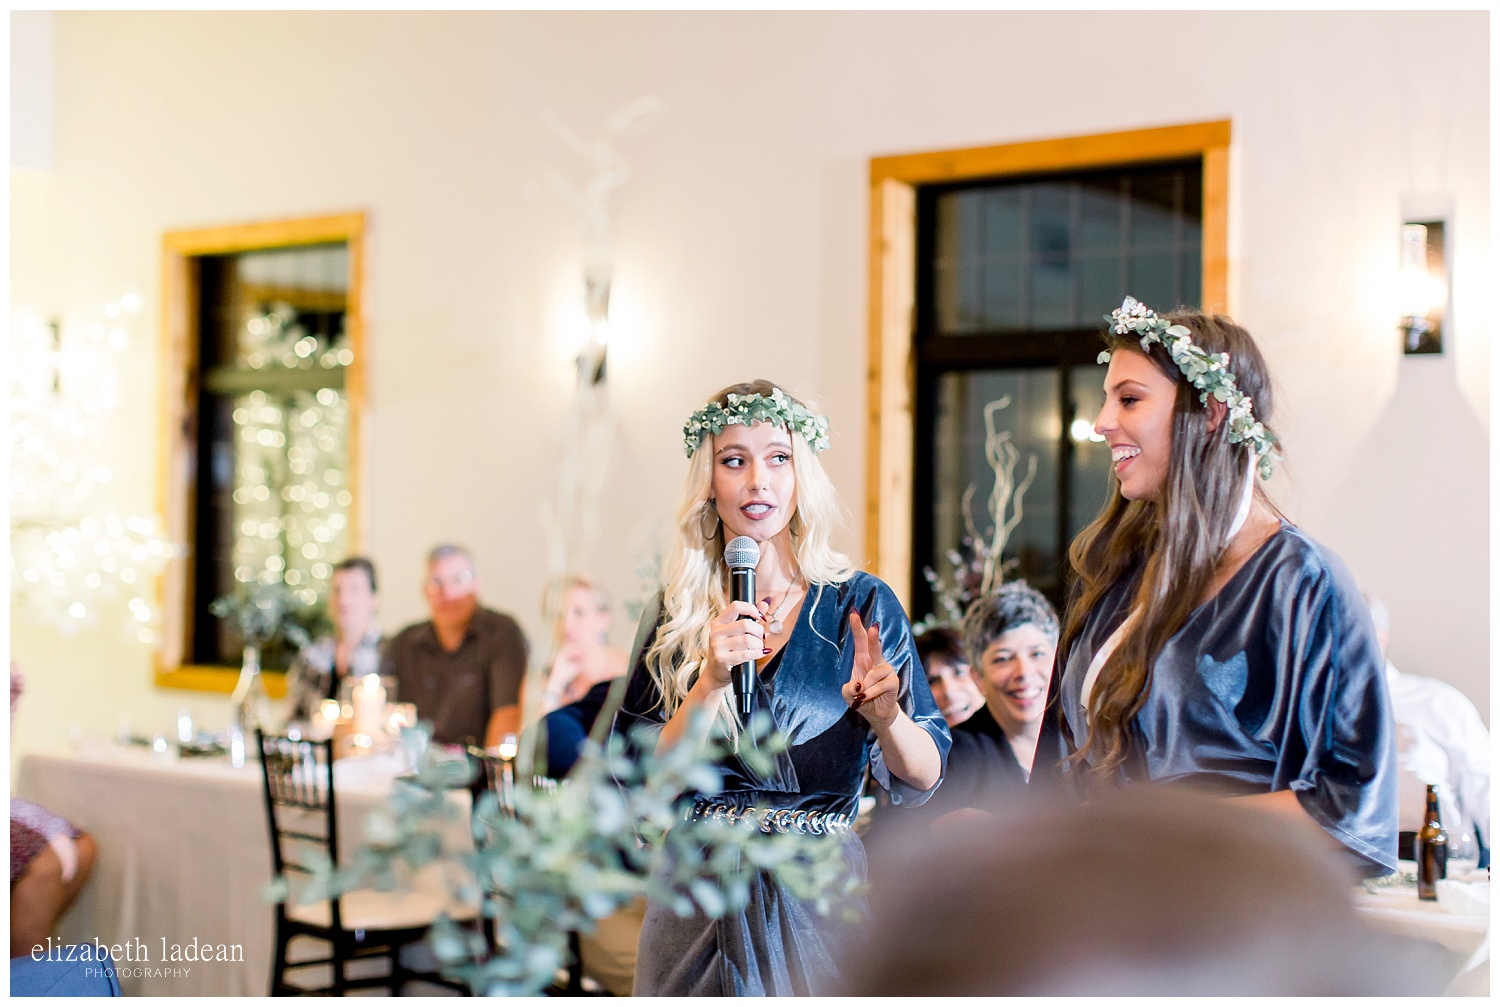 Willow-Creek-Blush-and-Blues-Outdoor-Wedding-Photography-S+Z2018-elizabeth-ladean-photography-photo_0615.jpg